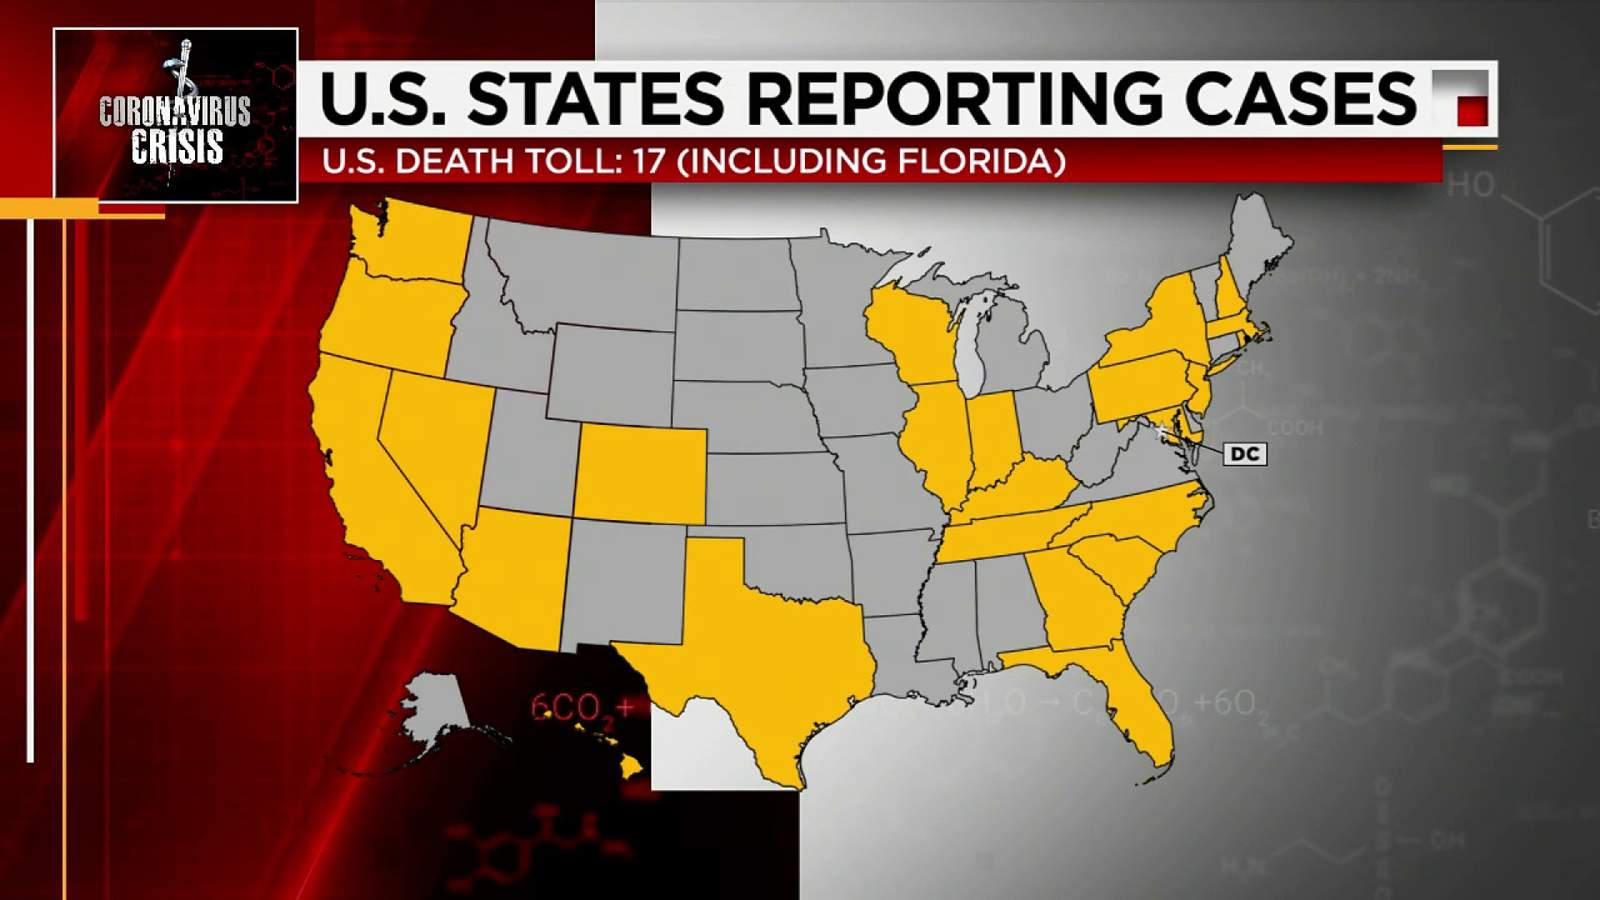 Florida: 2 dead in the state who tested positive for virus